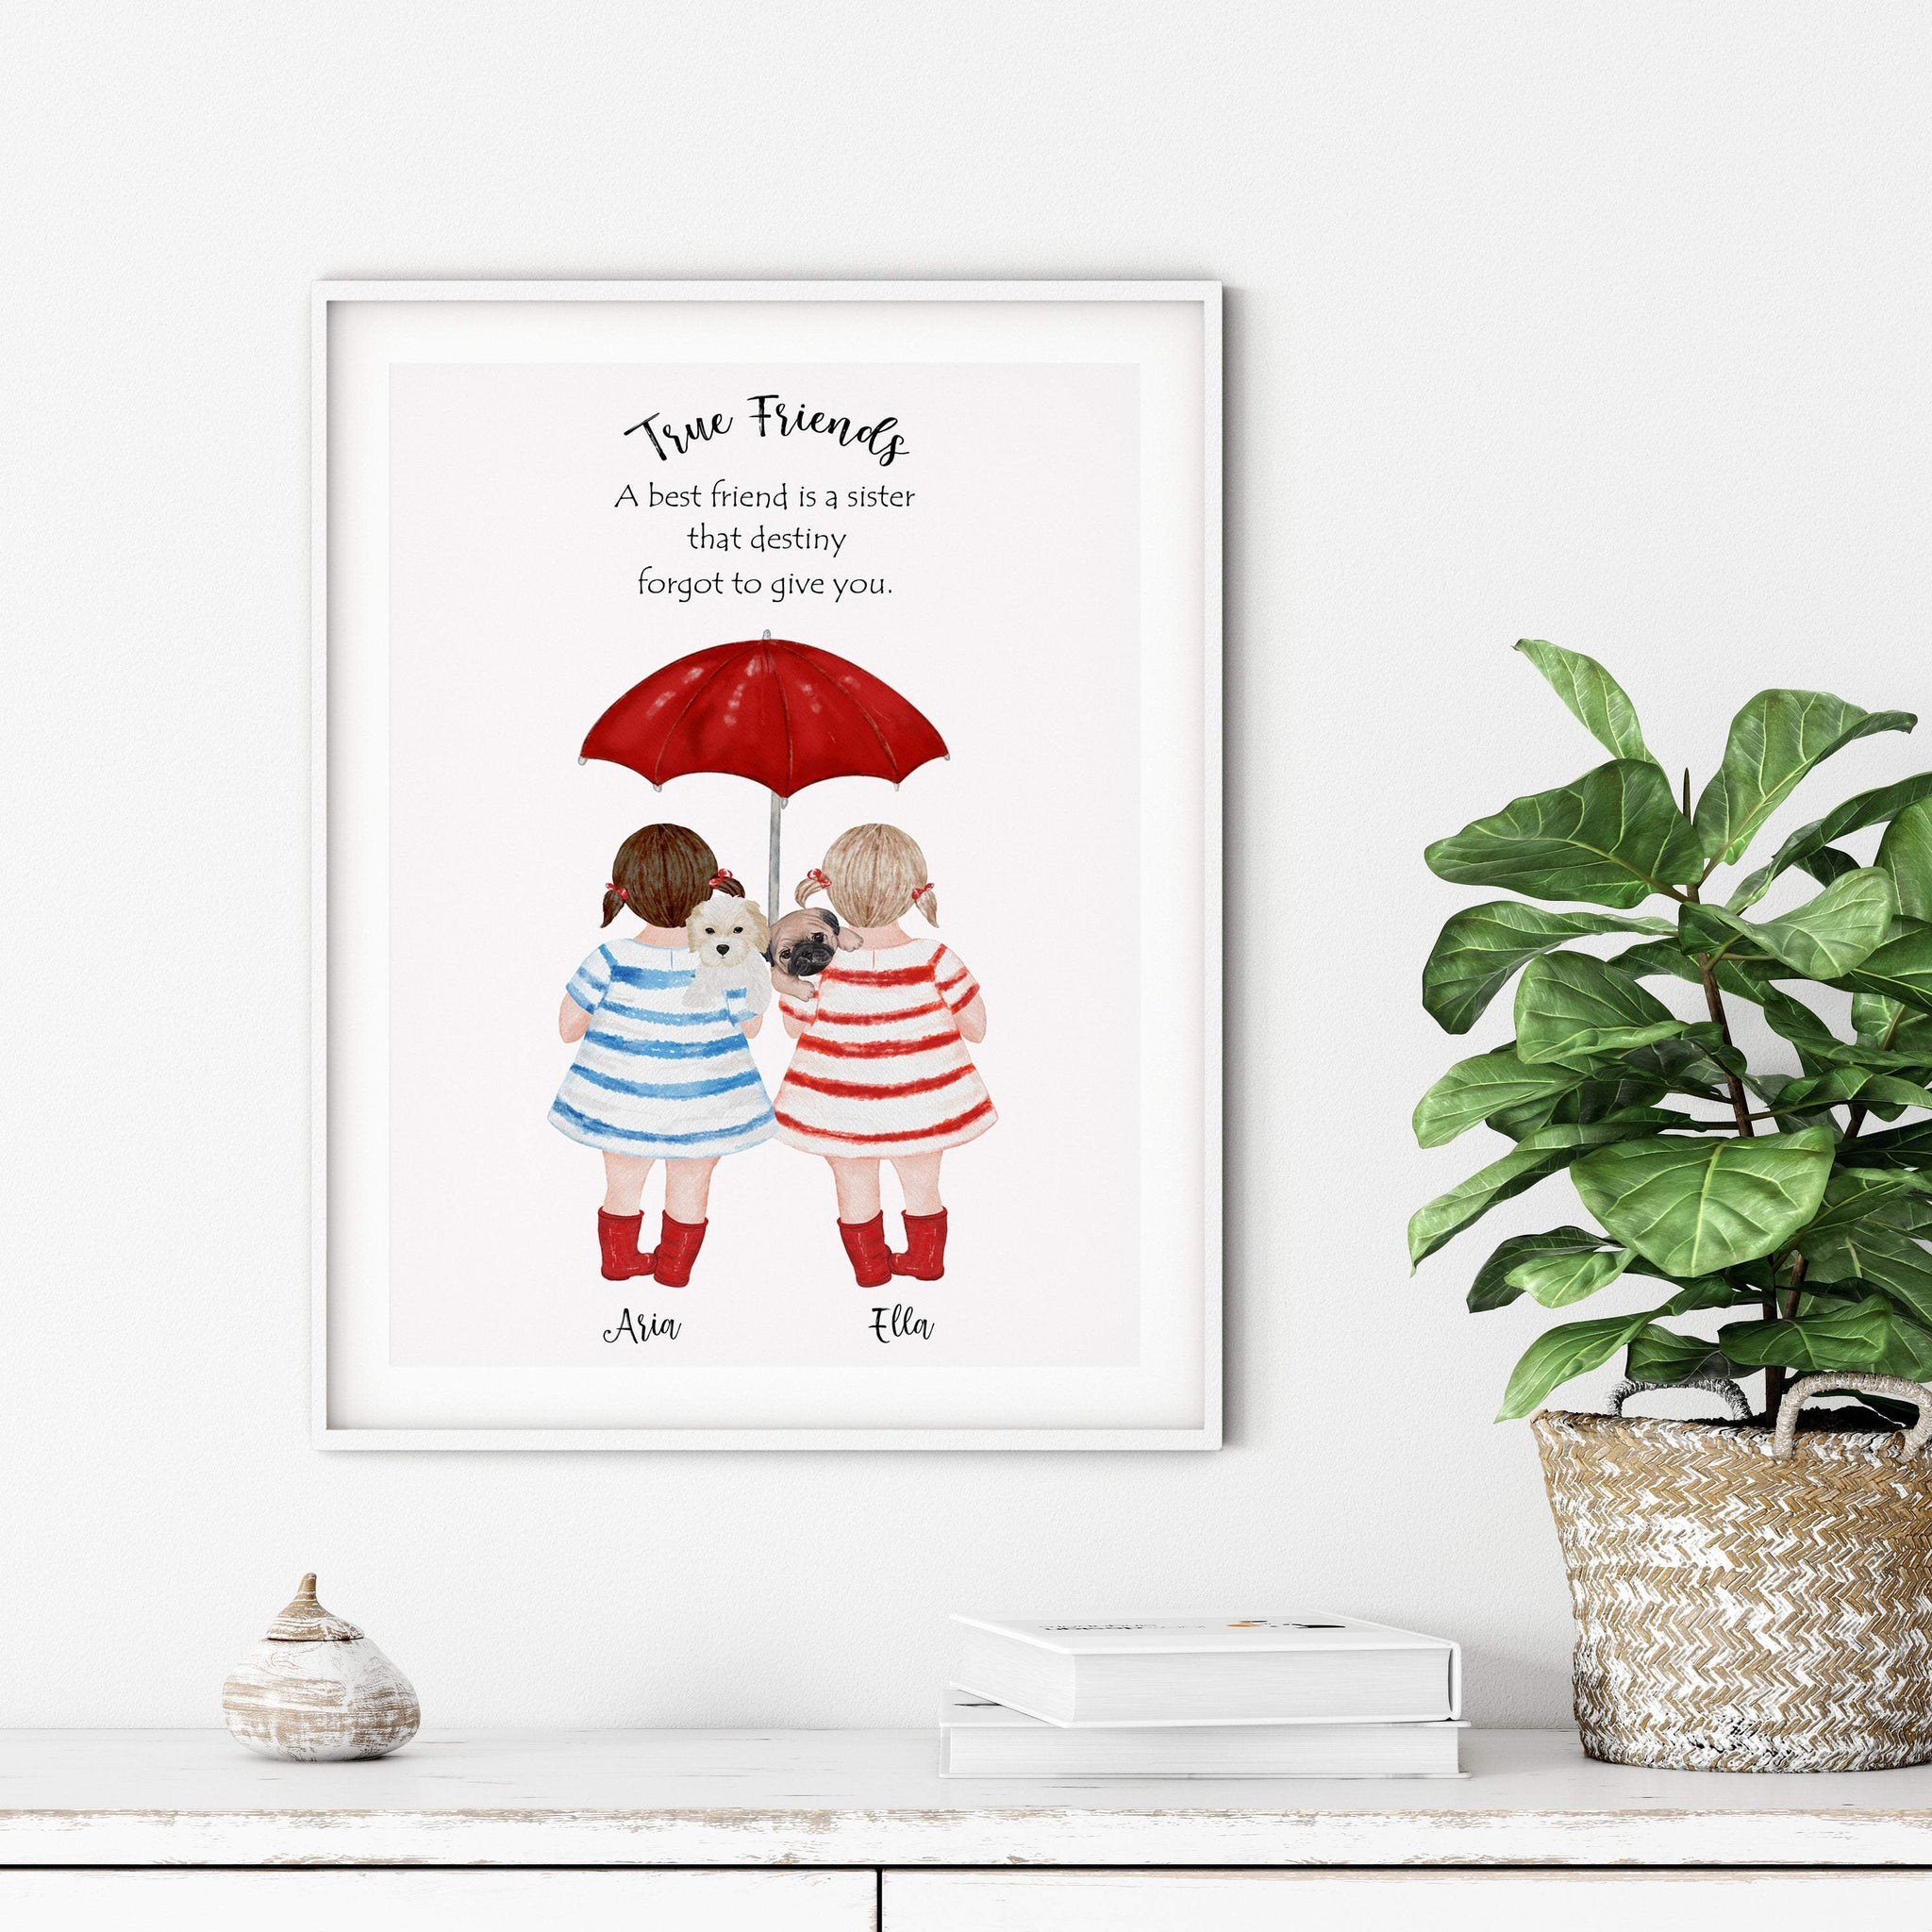 Friendship Print, Friendship Quotes, Gift for best friend, Mindfulness Gift, Best Friend Birthday, Kids Friendship Gift, Best Friend Gift - Ros Ruseva